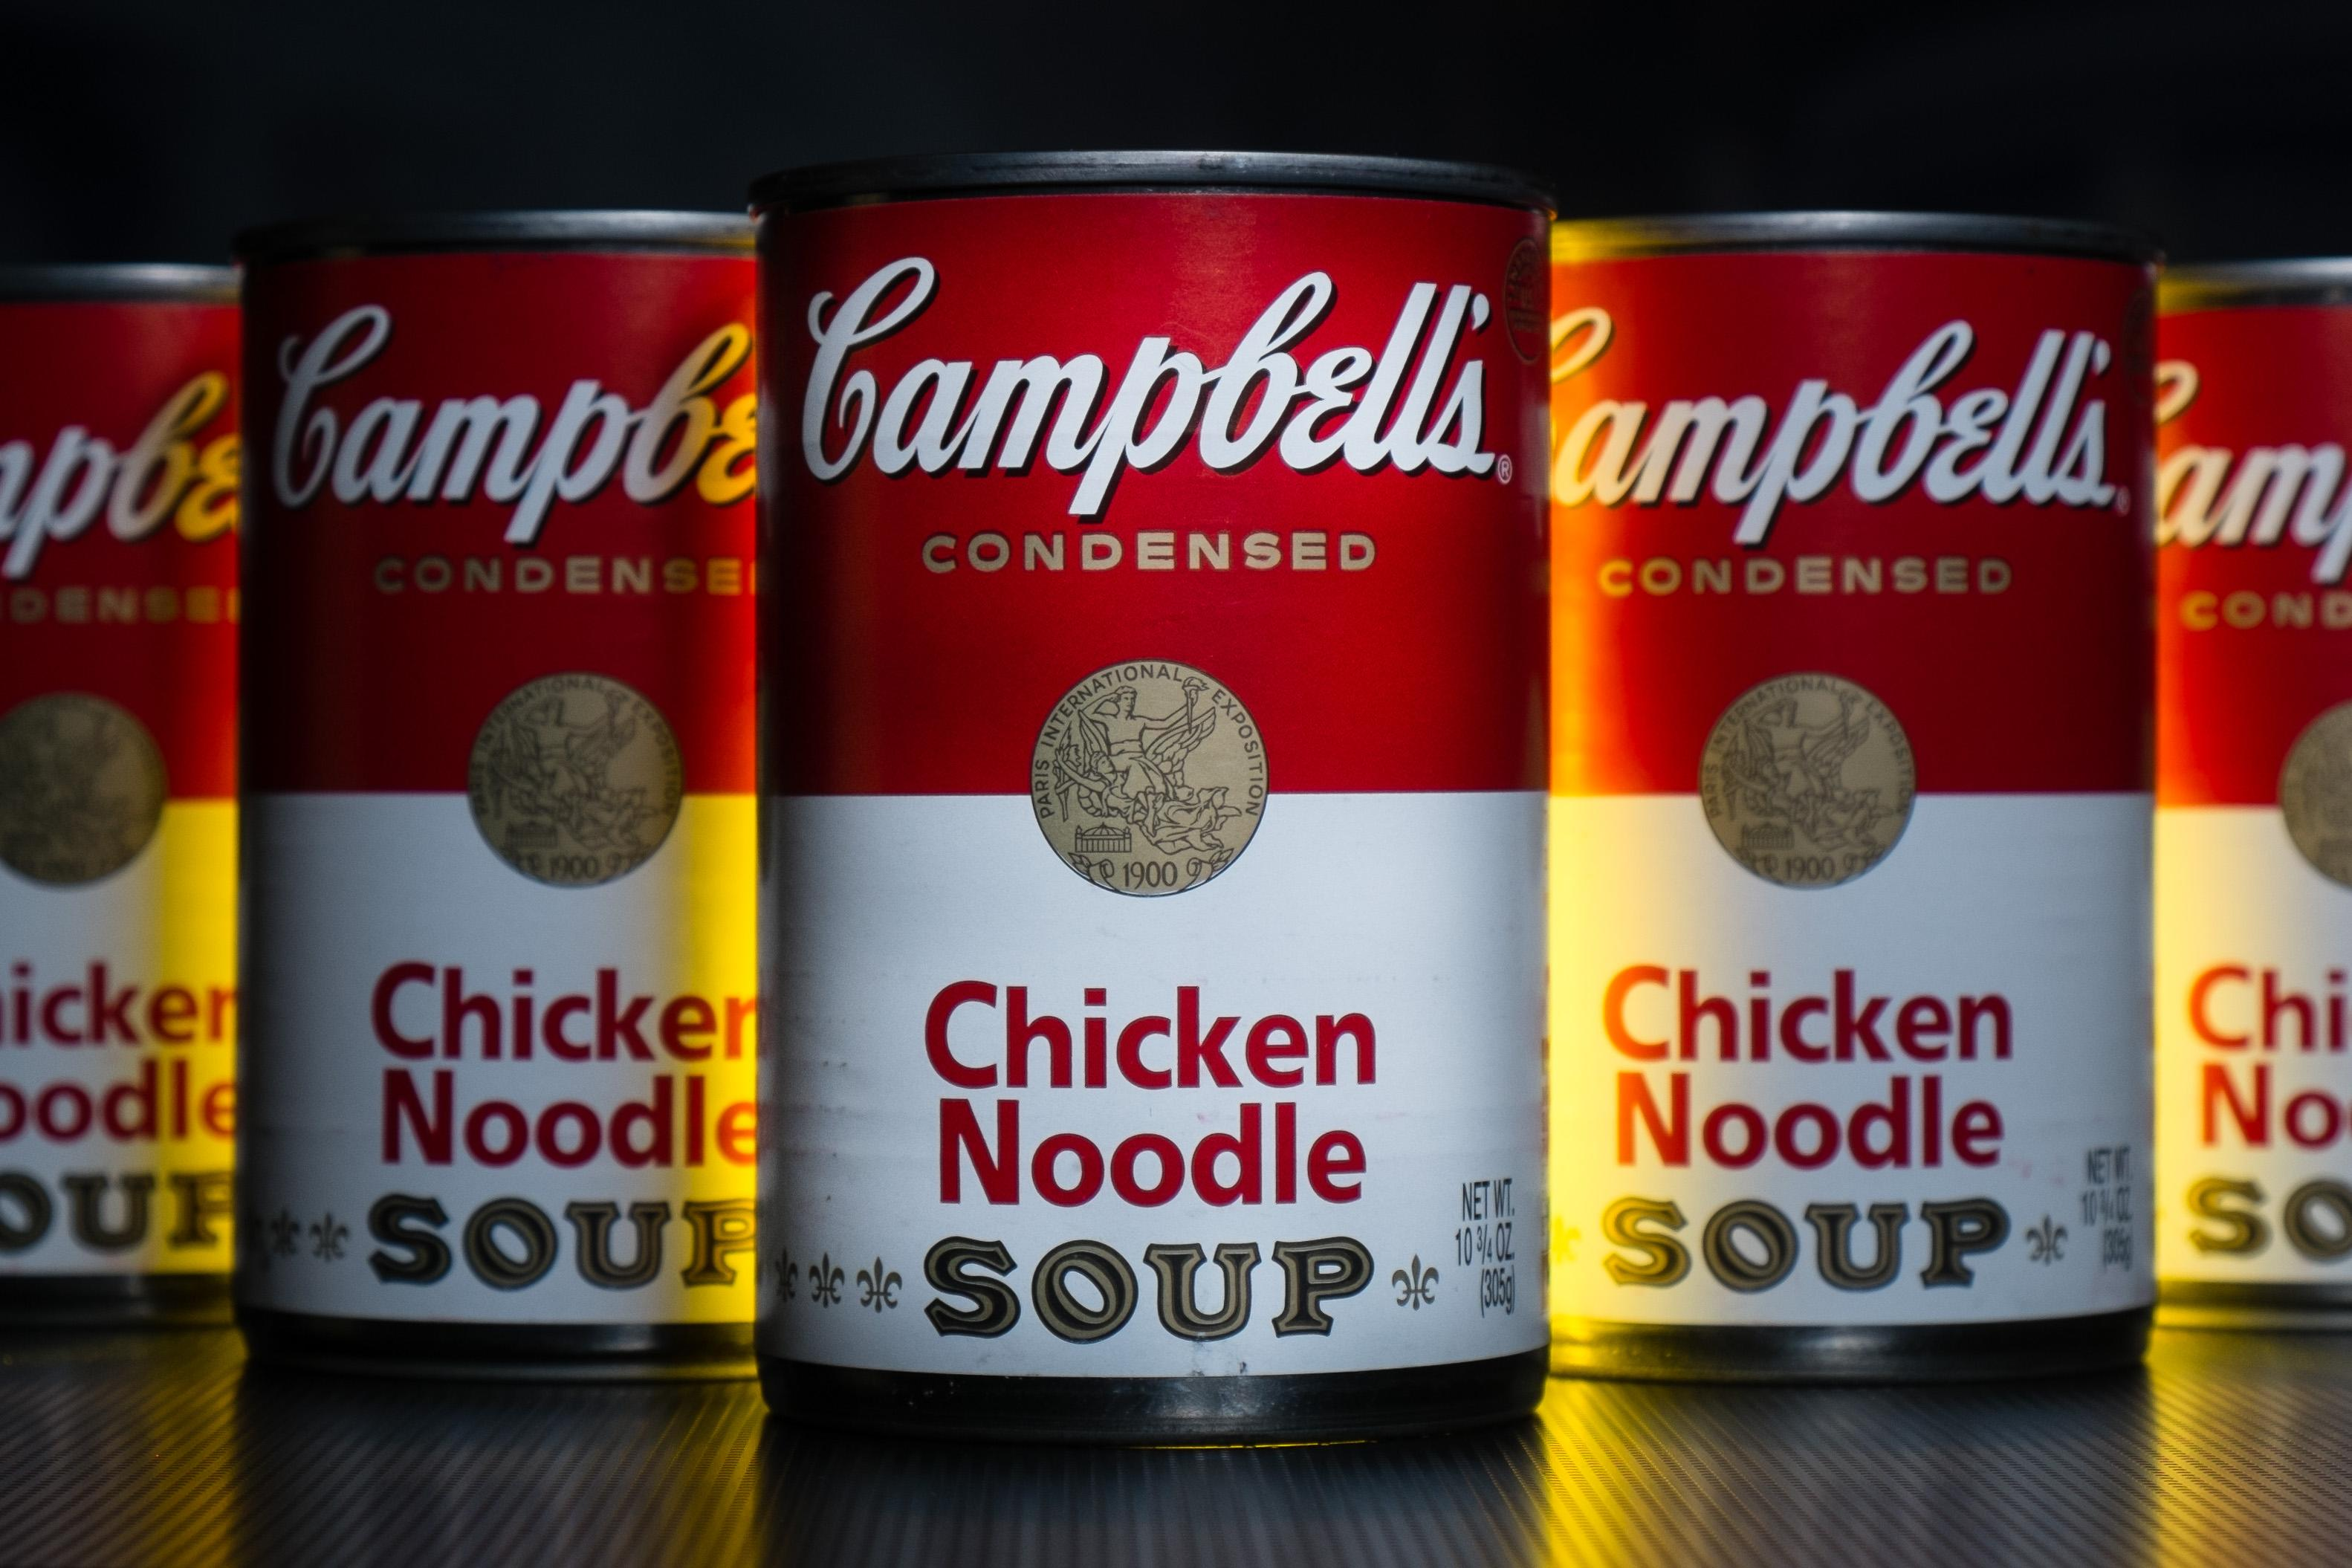 Campbell Soup shares soar on strong earnings, outlook